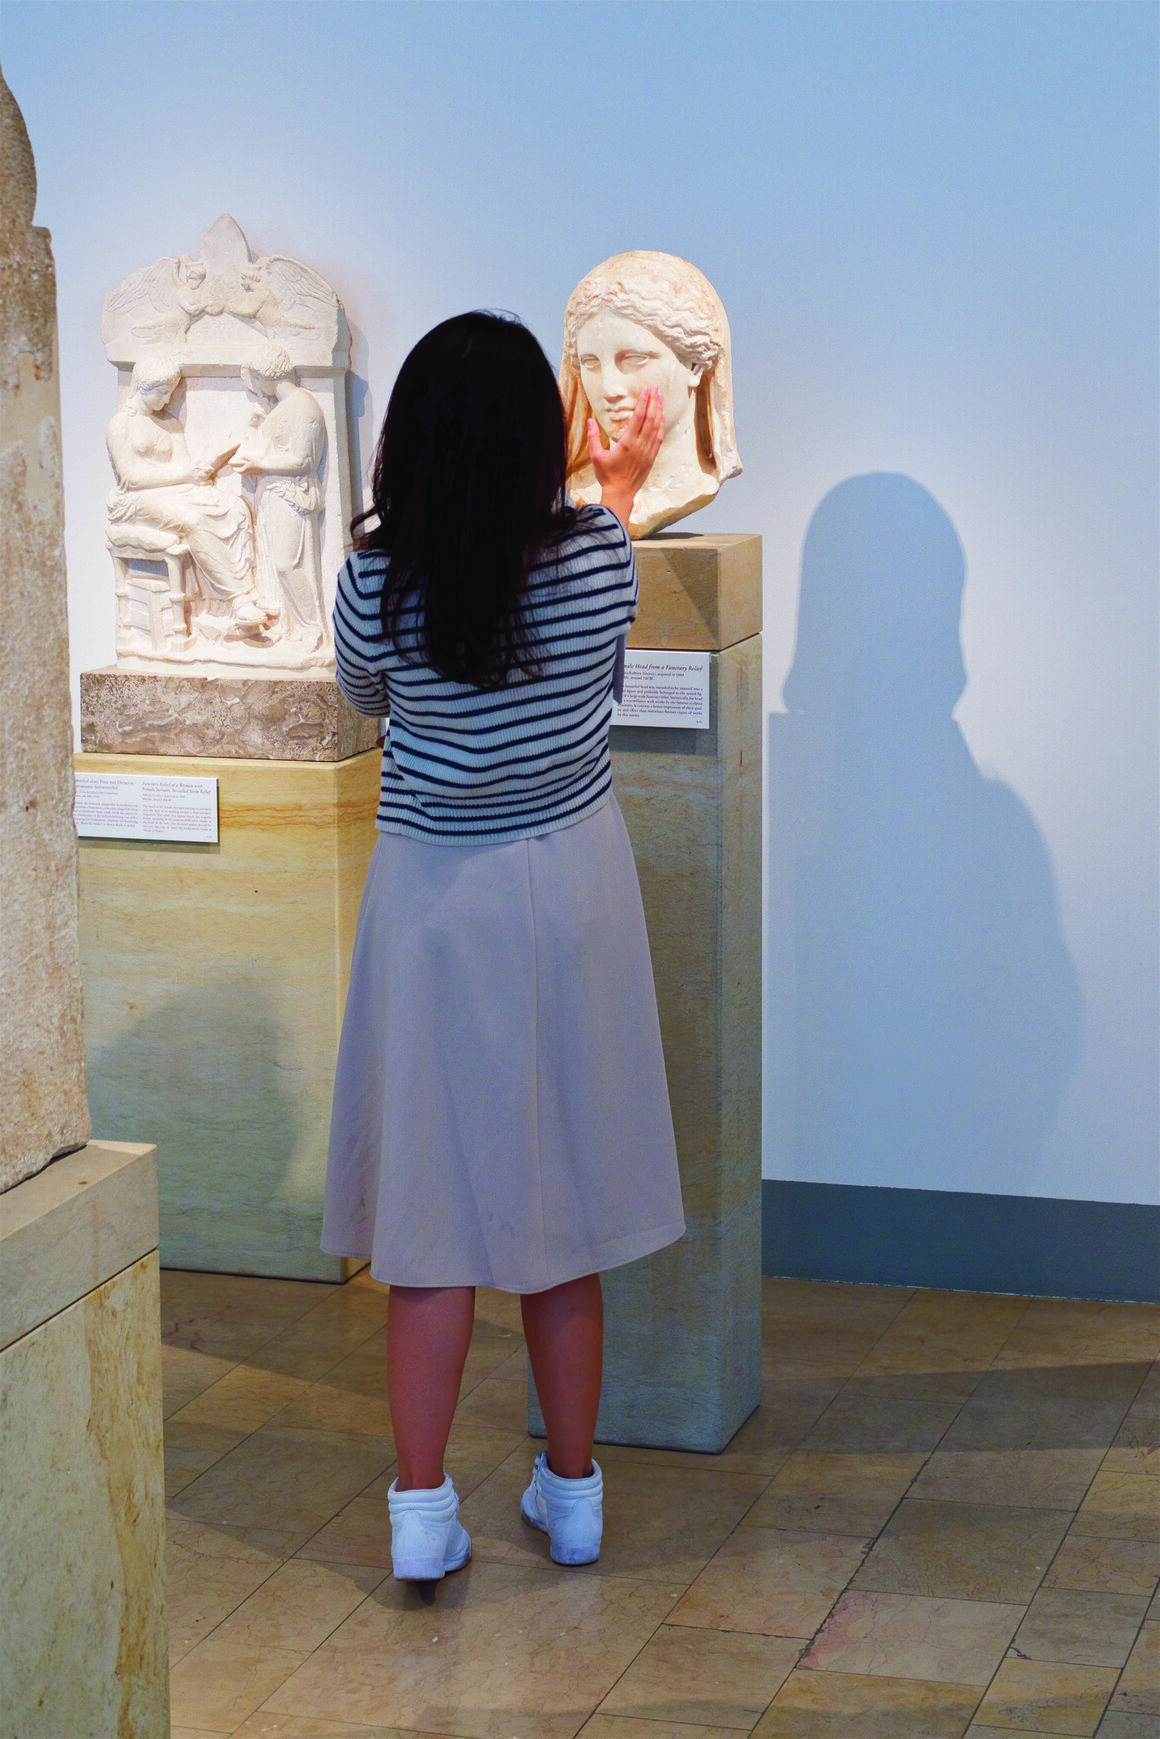 A visitor cups the face of a bust at the Altes Museum in Berlin.